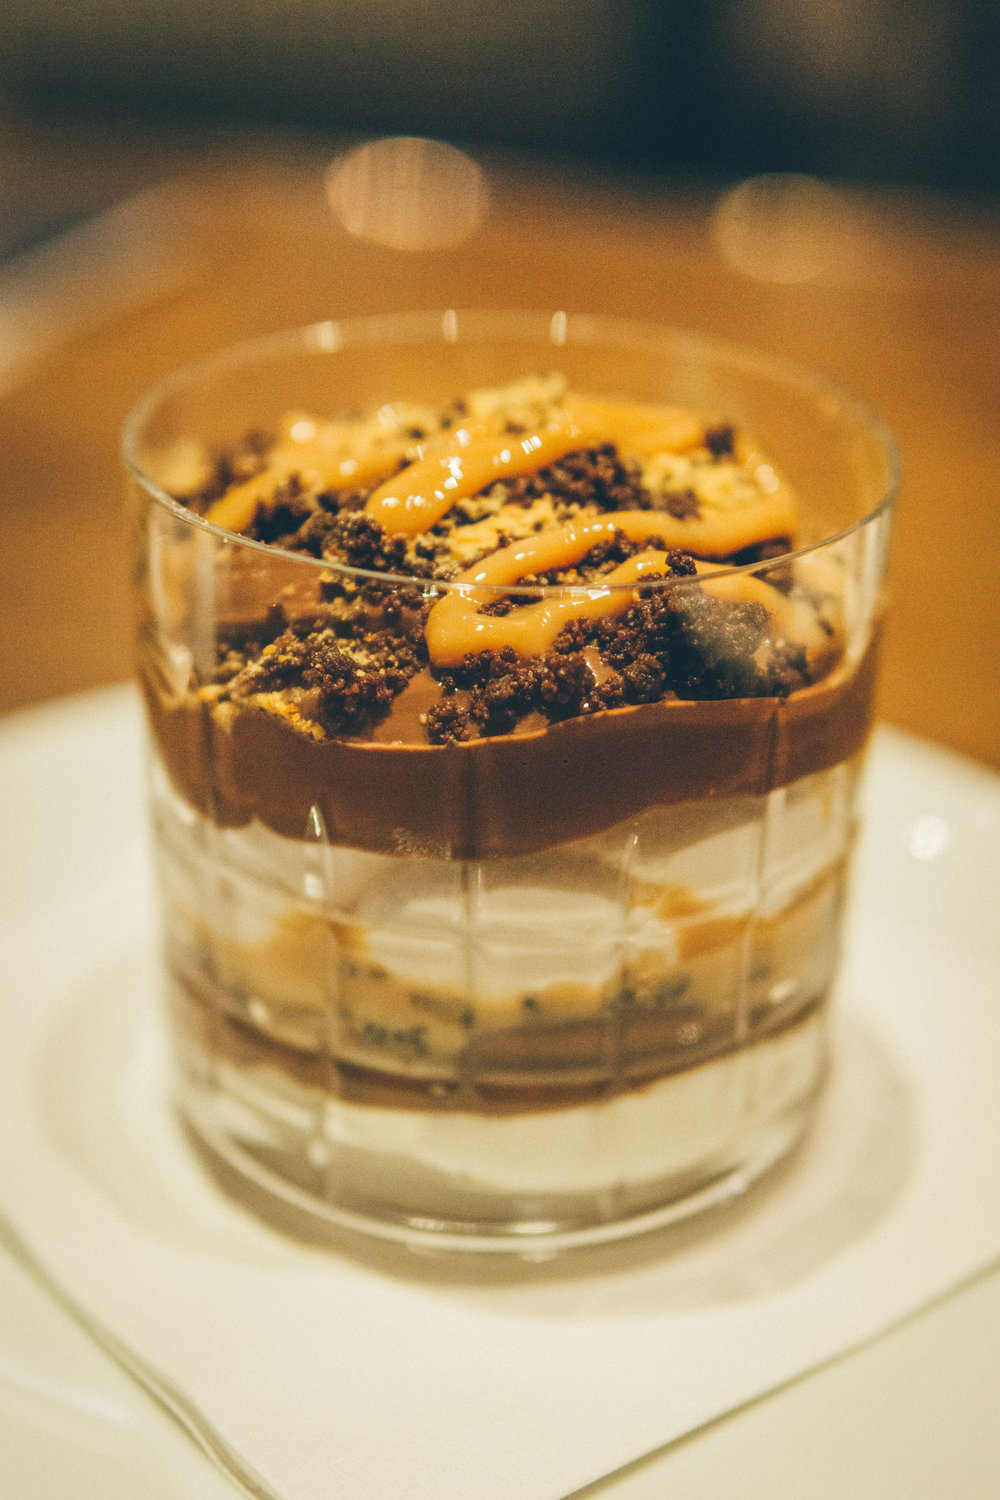 Chocolate Budino - dulce de leche, soft cream, chocolate soil